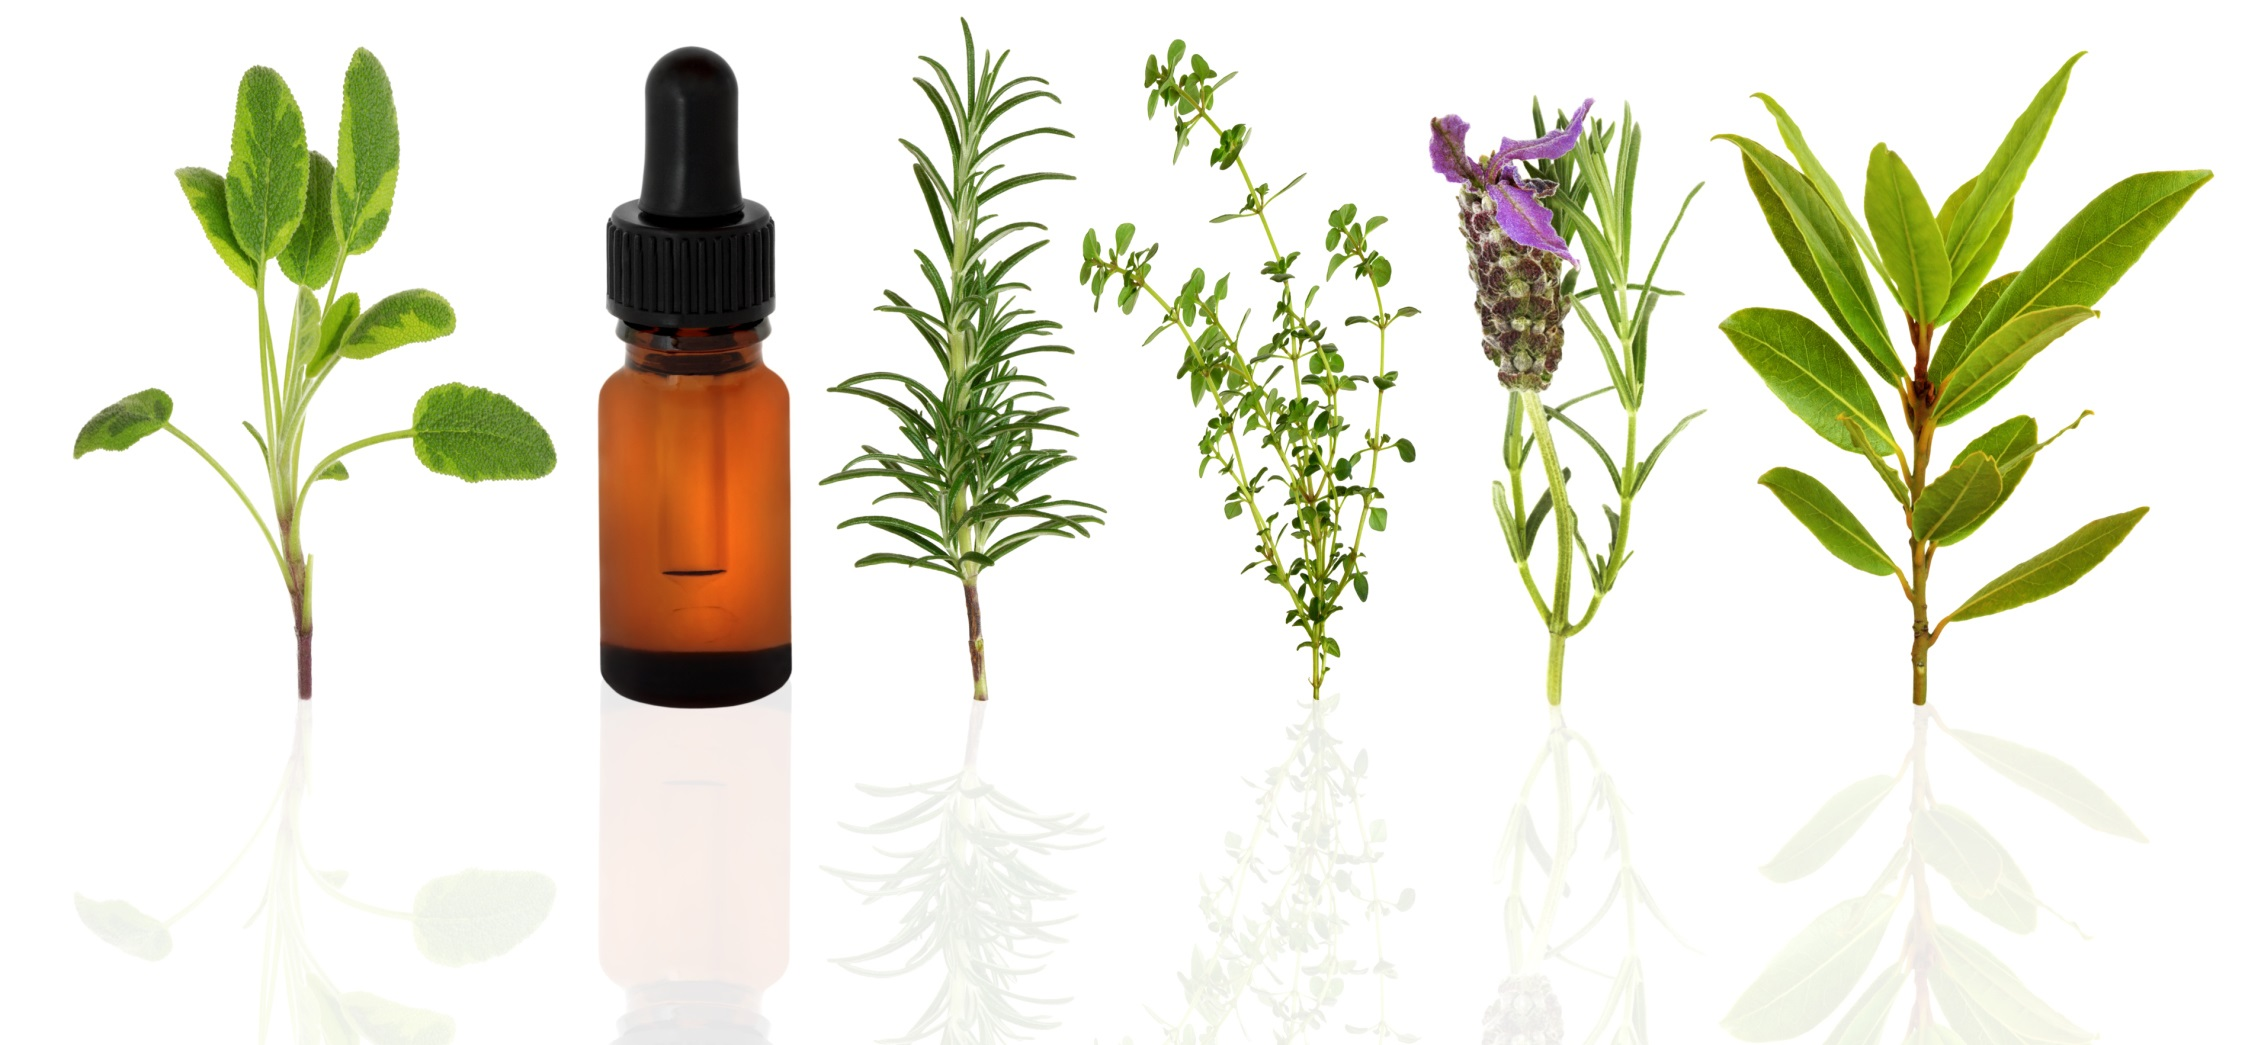 Indo World-Herbs Suppliers, herbal oils Exporters, Botanical herbs